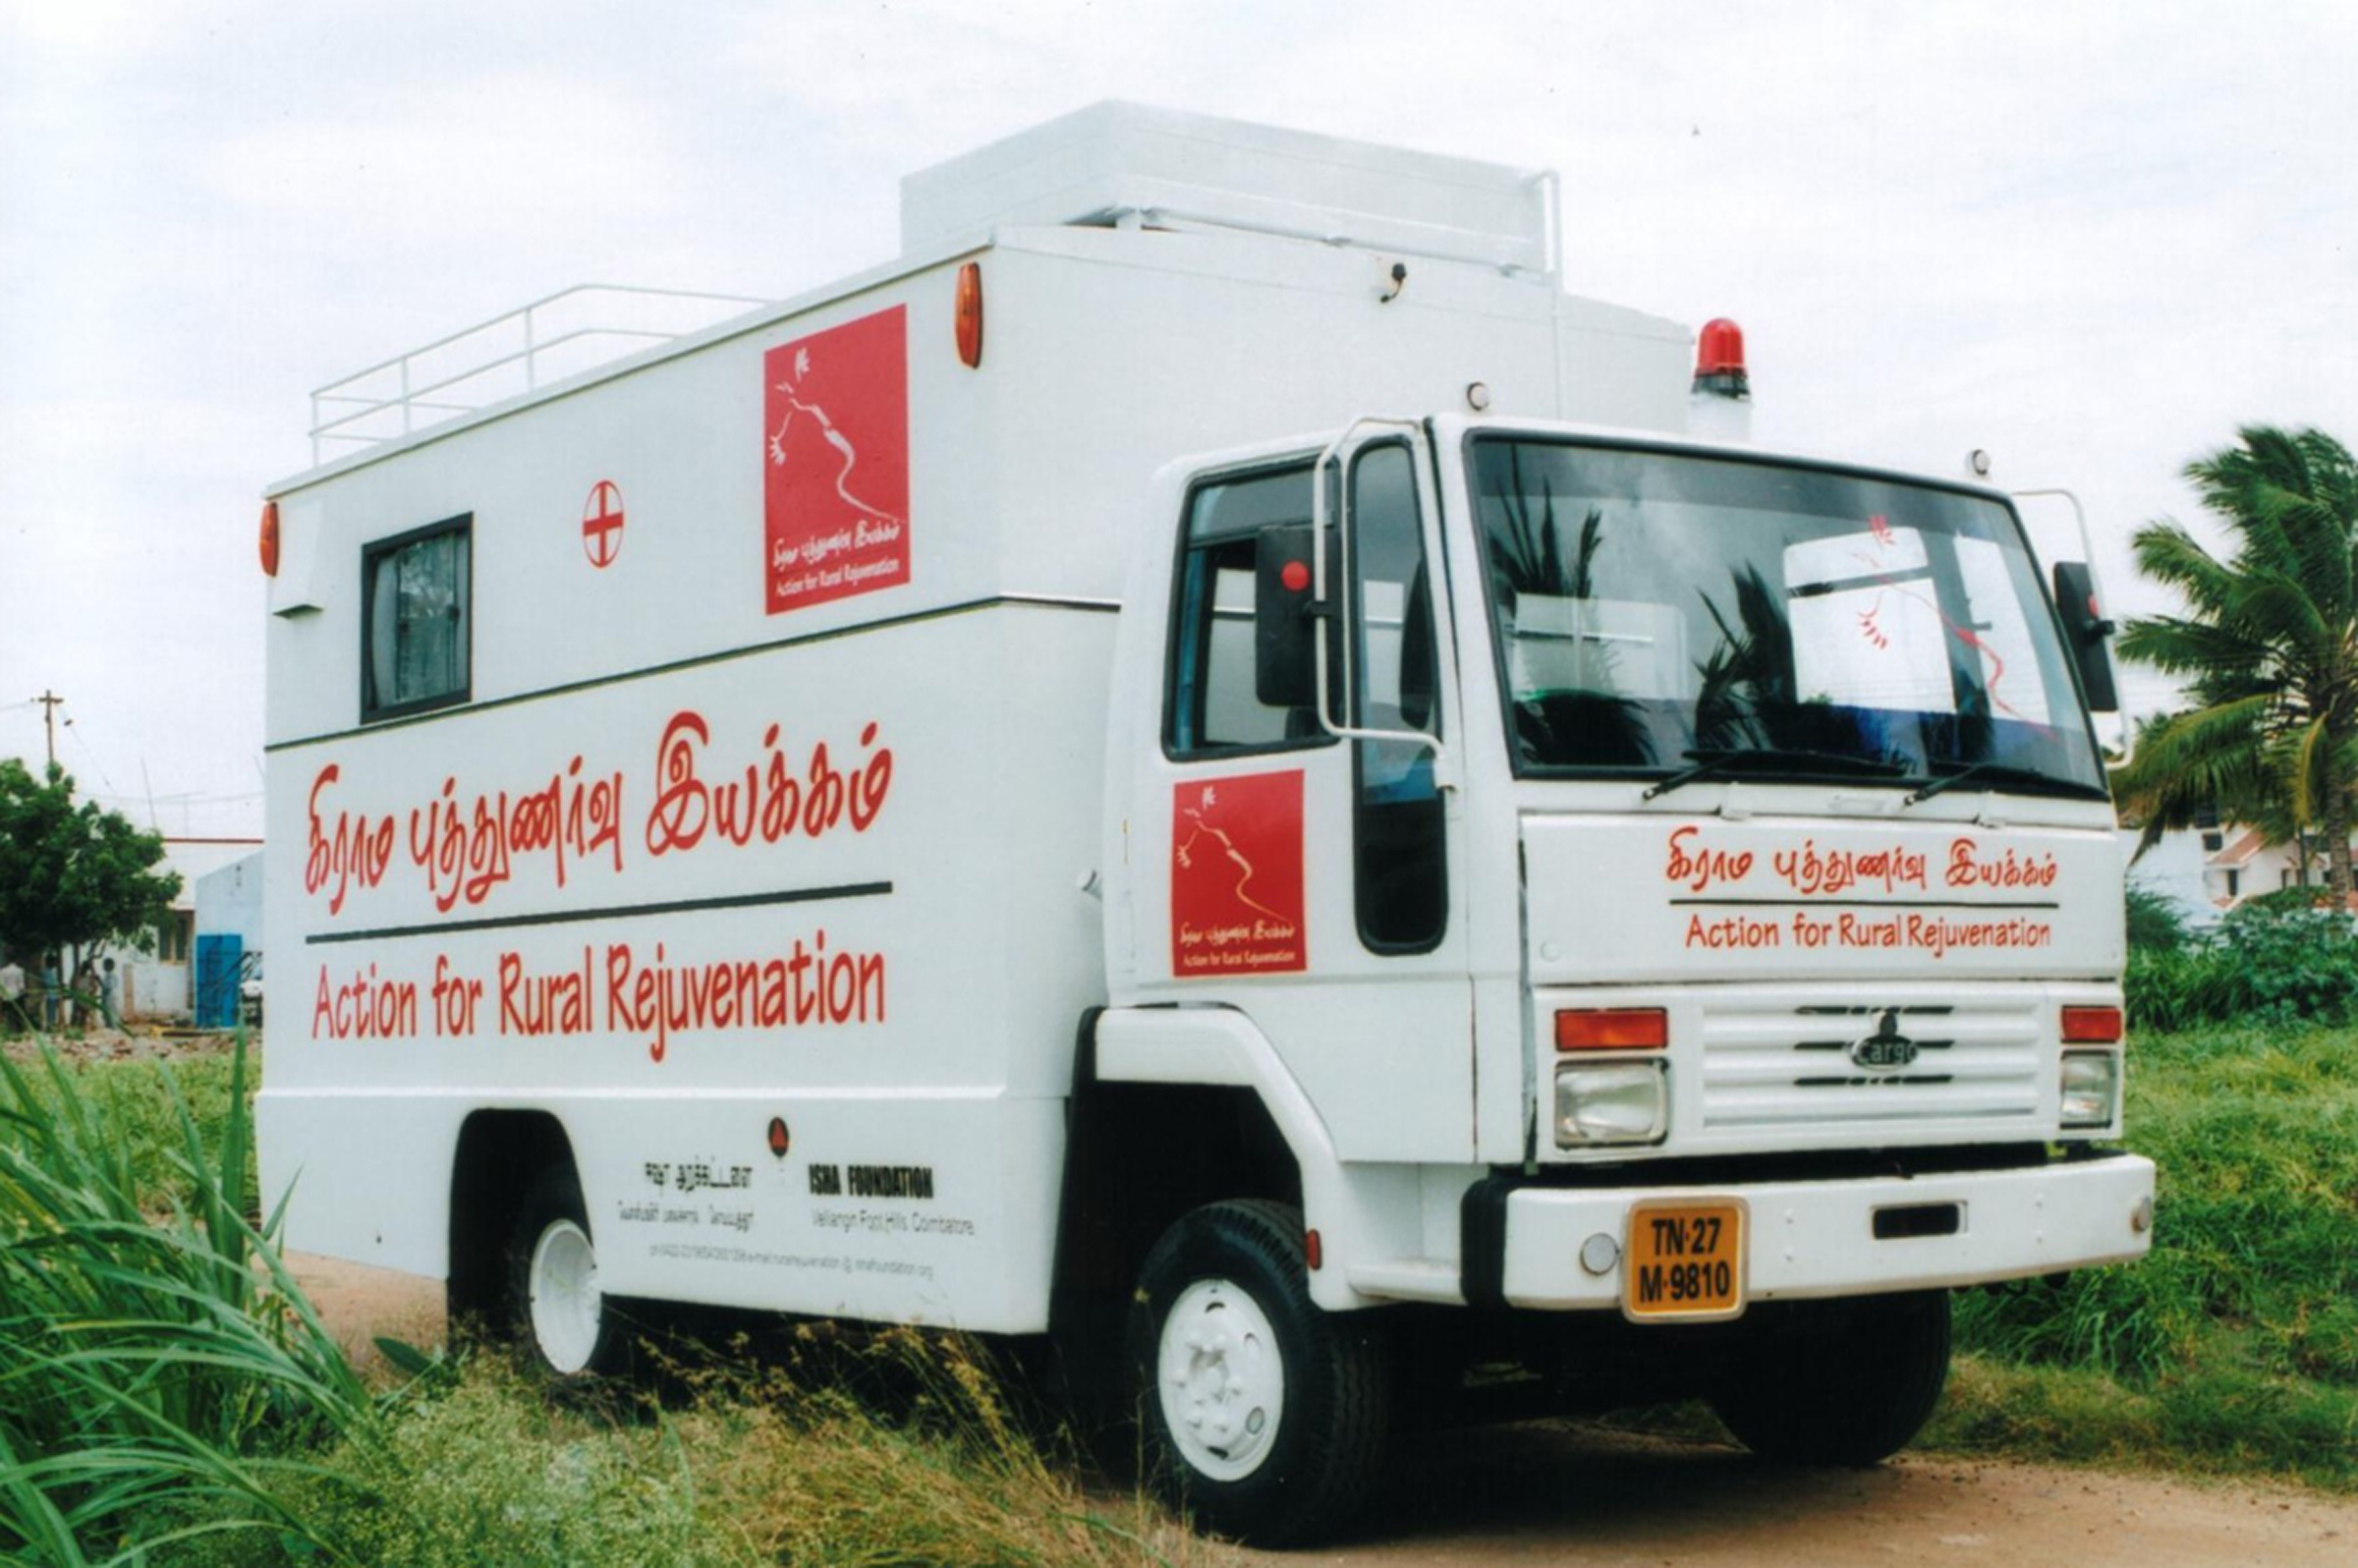 File:Mobile health clinic with arr jpg - Wikimedia Commons